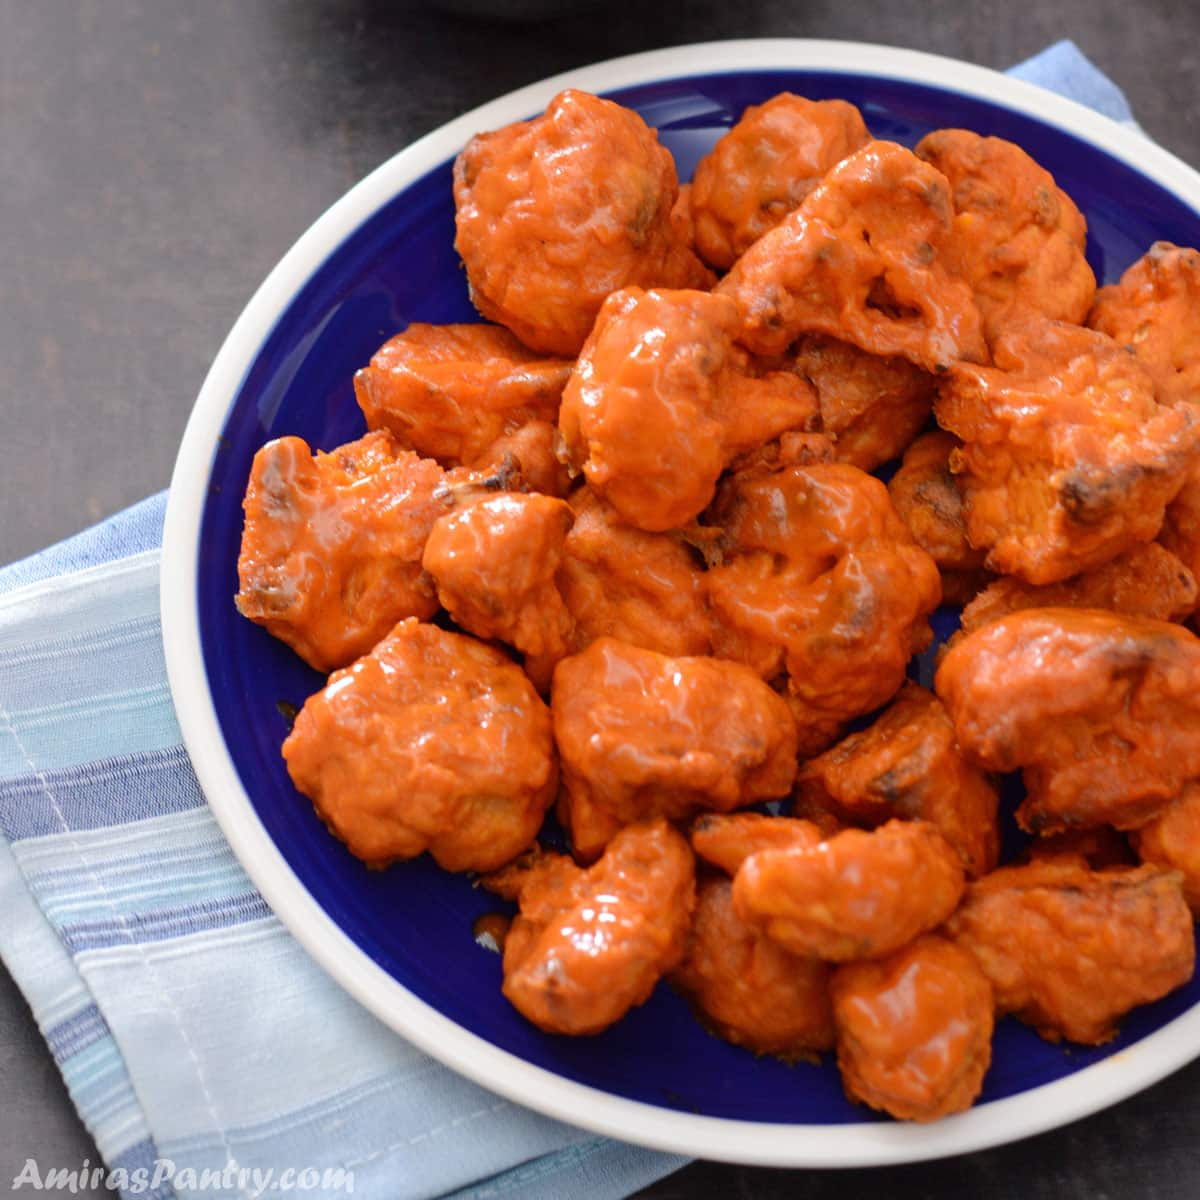 Cauliflower bites on a blue plate with a white rim placed on a black surface.